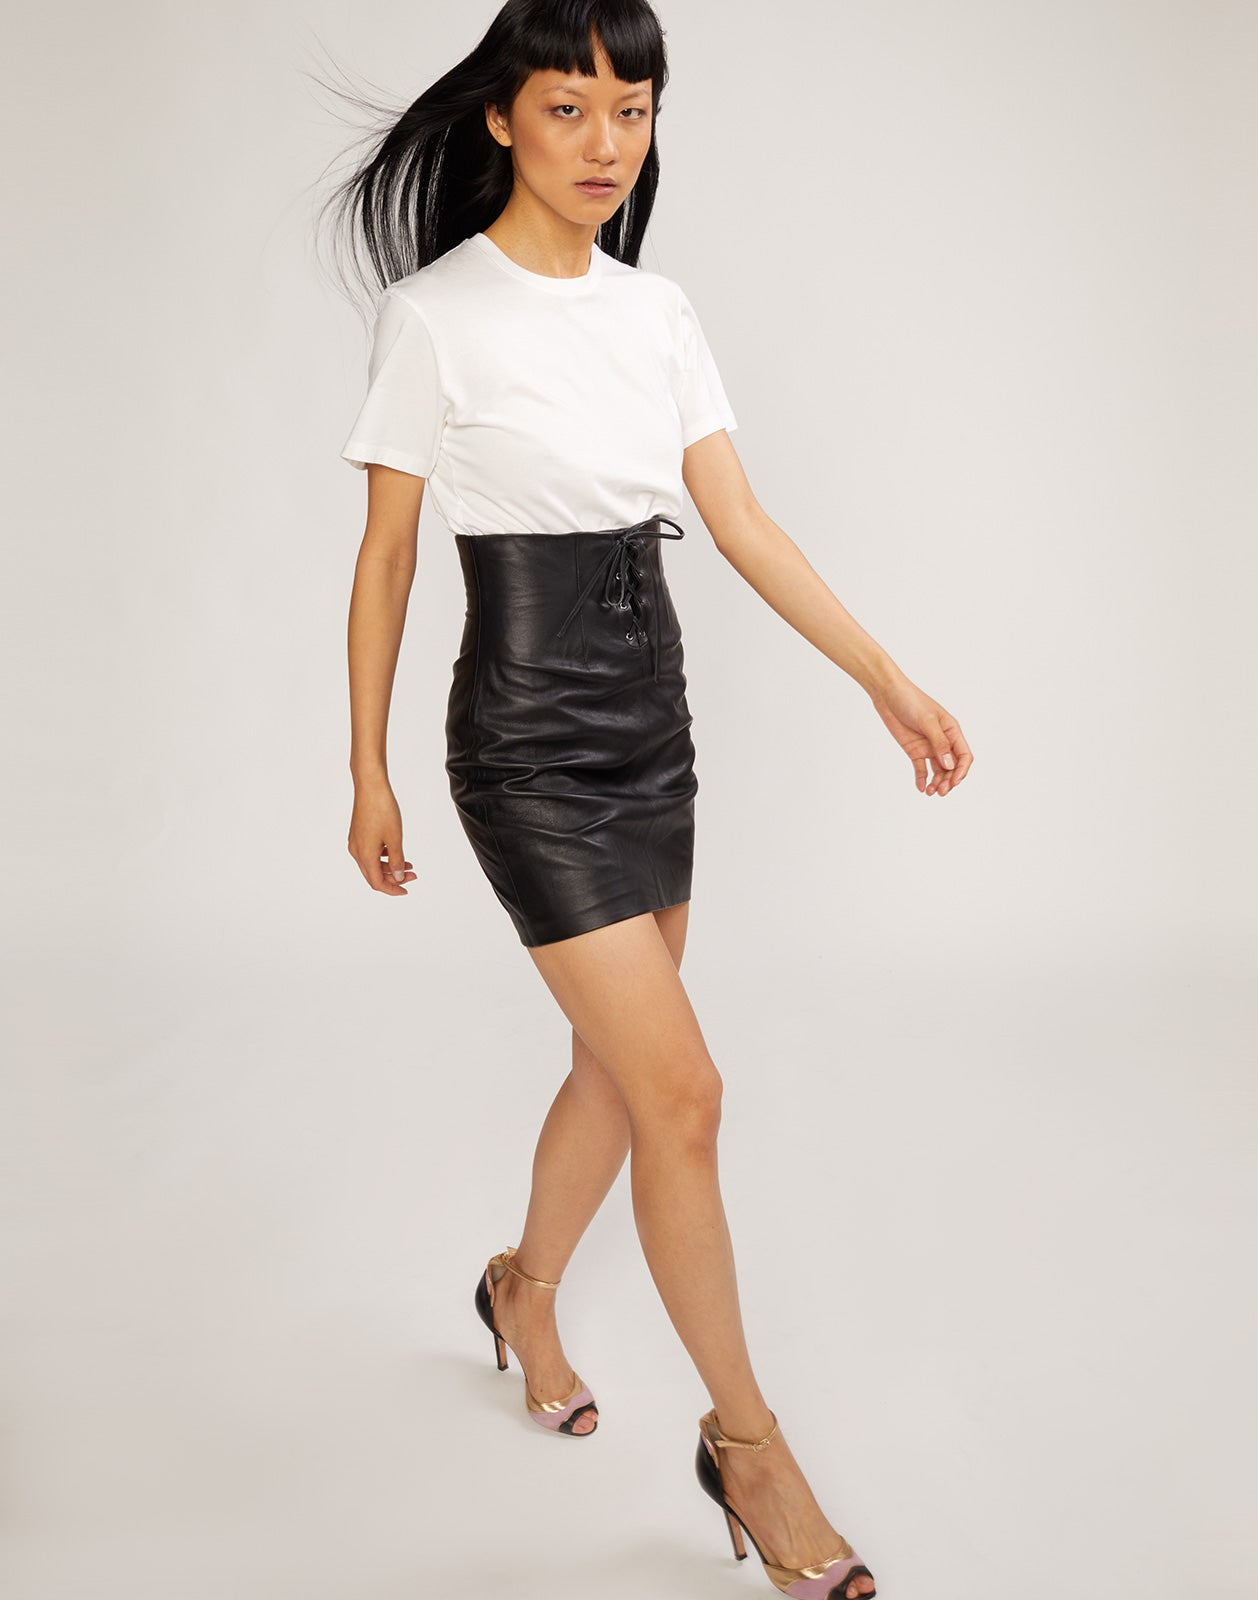 Full length view of model walking lace front, high waisted, leather skirt.